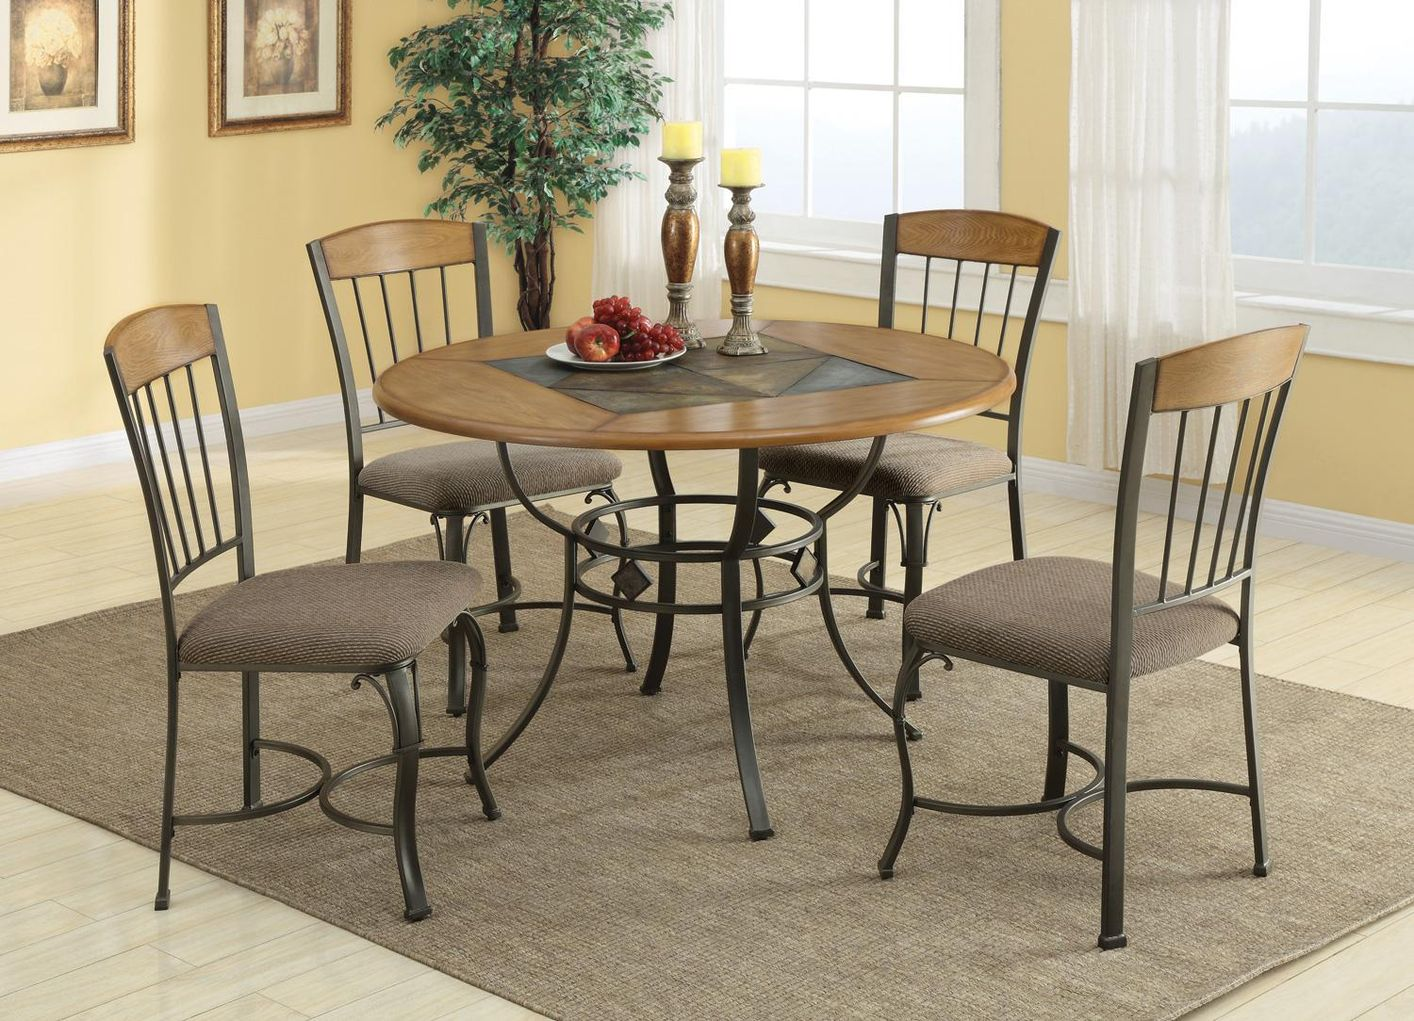 120771 120772 Brown Metal And Wood Dining Table Set In Los Angeles Ca